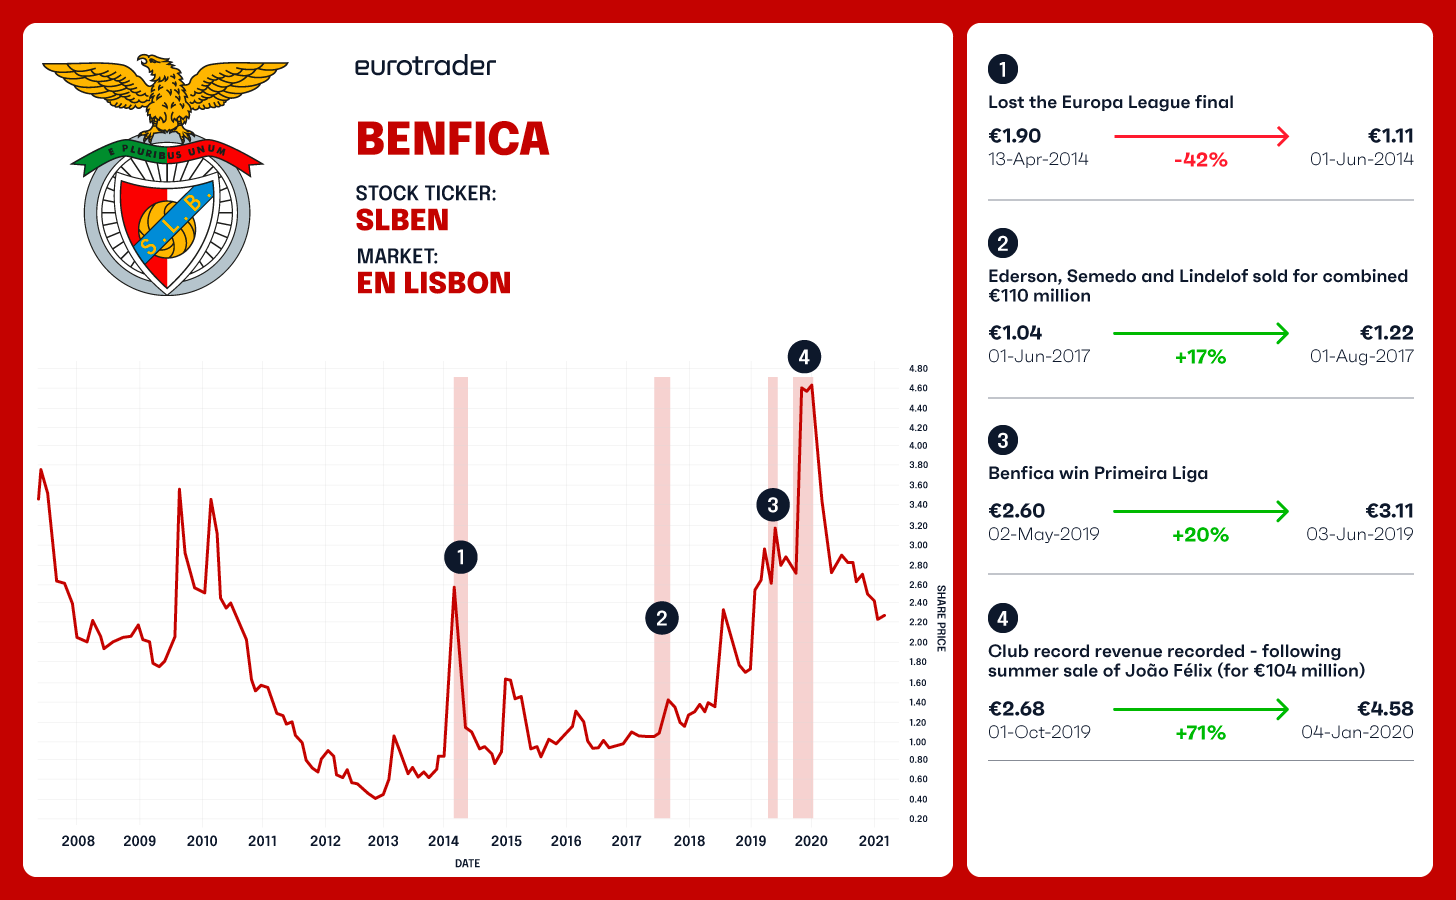 BENFICA football club share price